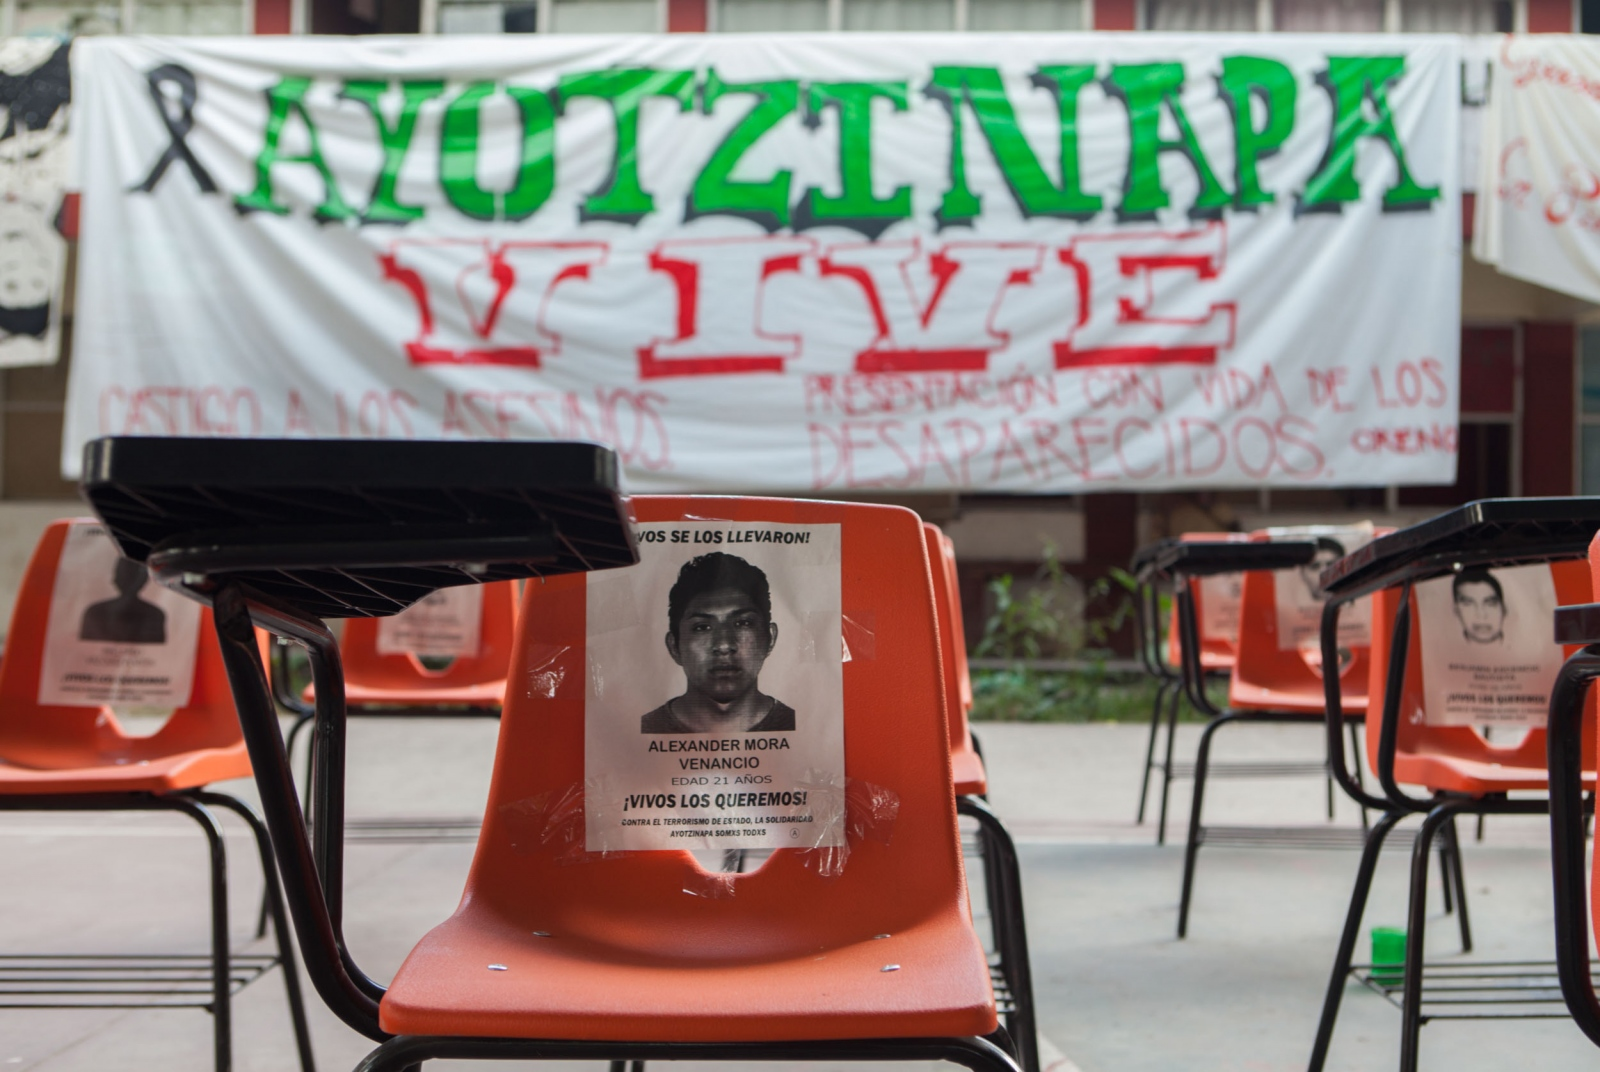 · Chair with the image of Alexandre Peña, the first student to be confimed dead among the remains found by the argentinian medical experts. One of the 42 school seats with images of the 42 dissapeared students and 4 murdered on september 26th, found in the basketball court of the school which has served as a reunion point, cafeteria and waiting lounge for the past 3 months. // · Silla con la imagen de Alexander Peña, el primer normalista a ser confirmado muerto entre los restos identificados por los peritos argentinos. Una de las 42 sillas de los normalistas desaparecidos y 4 asesinados el dia 26 de septiembre, que se encuentran en la cancha de basquetbol de la Escuela Normal Isidro Burgos, que ha servido como lugar de reunión, cafetería comunitaria, espacio de encuentros y de espera angustiante durante 3 meses.